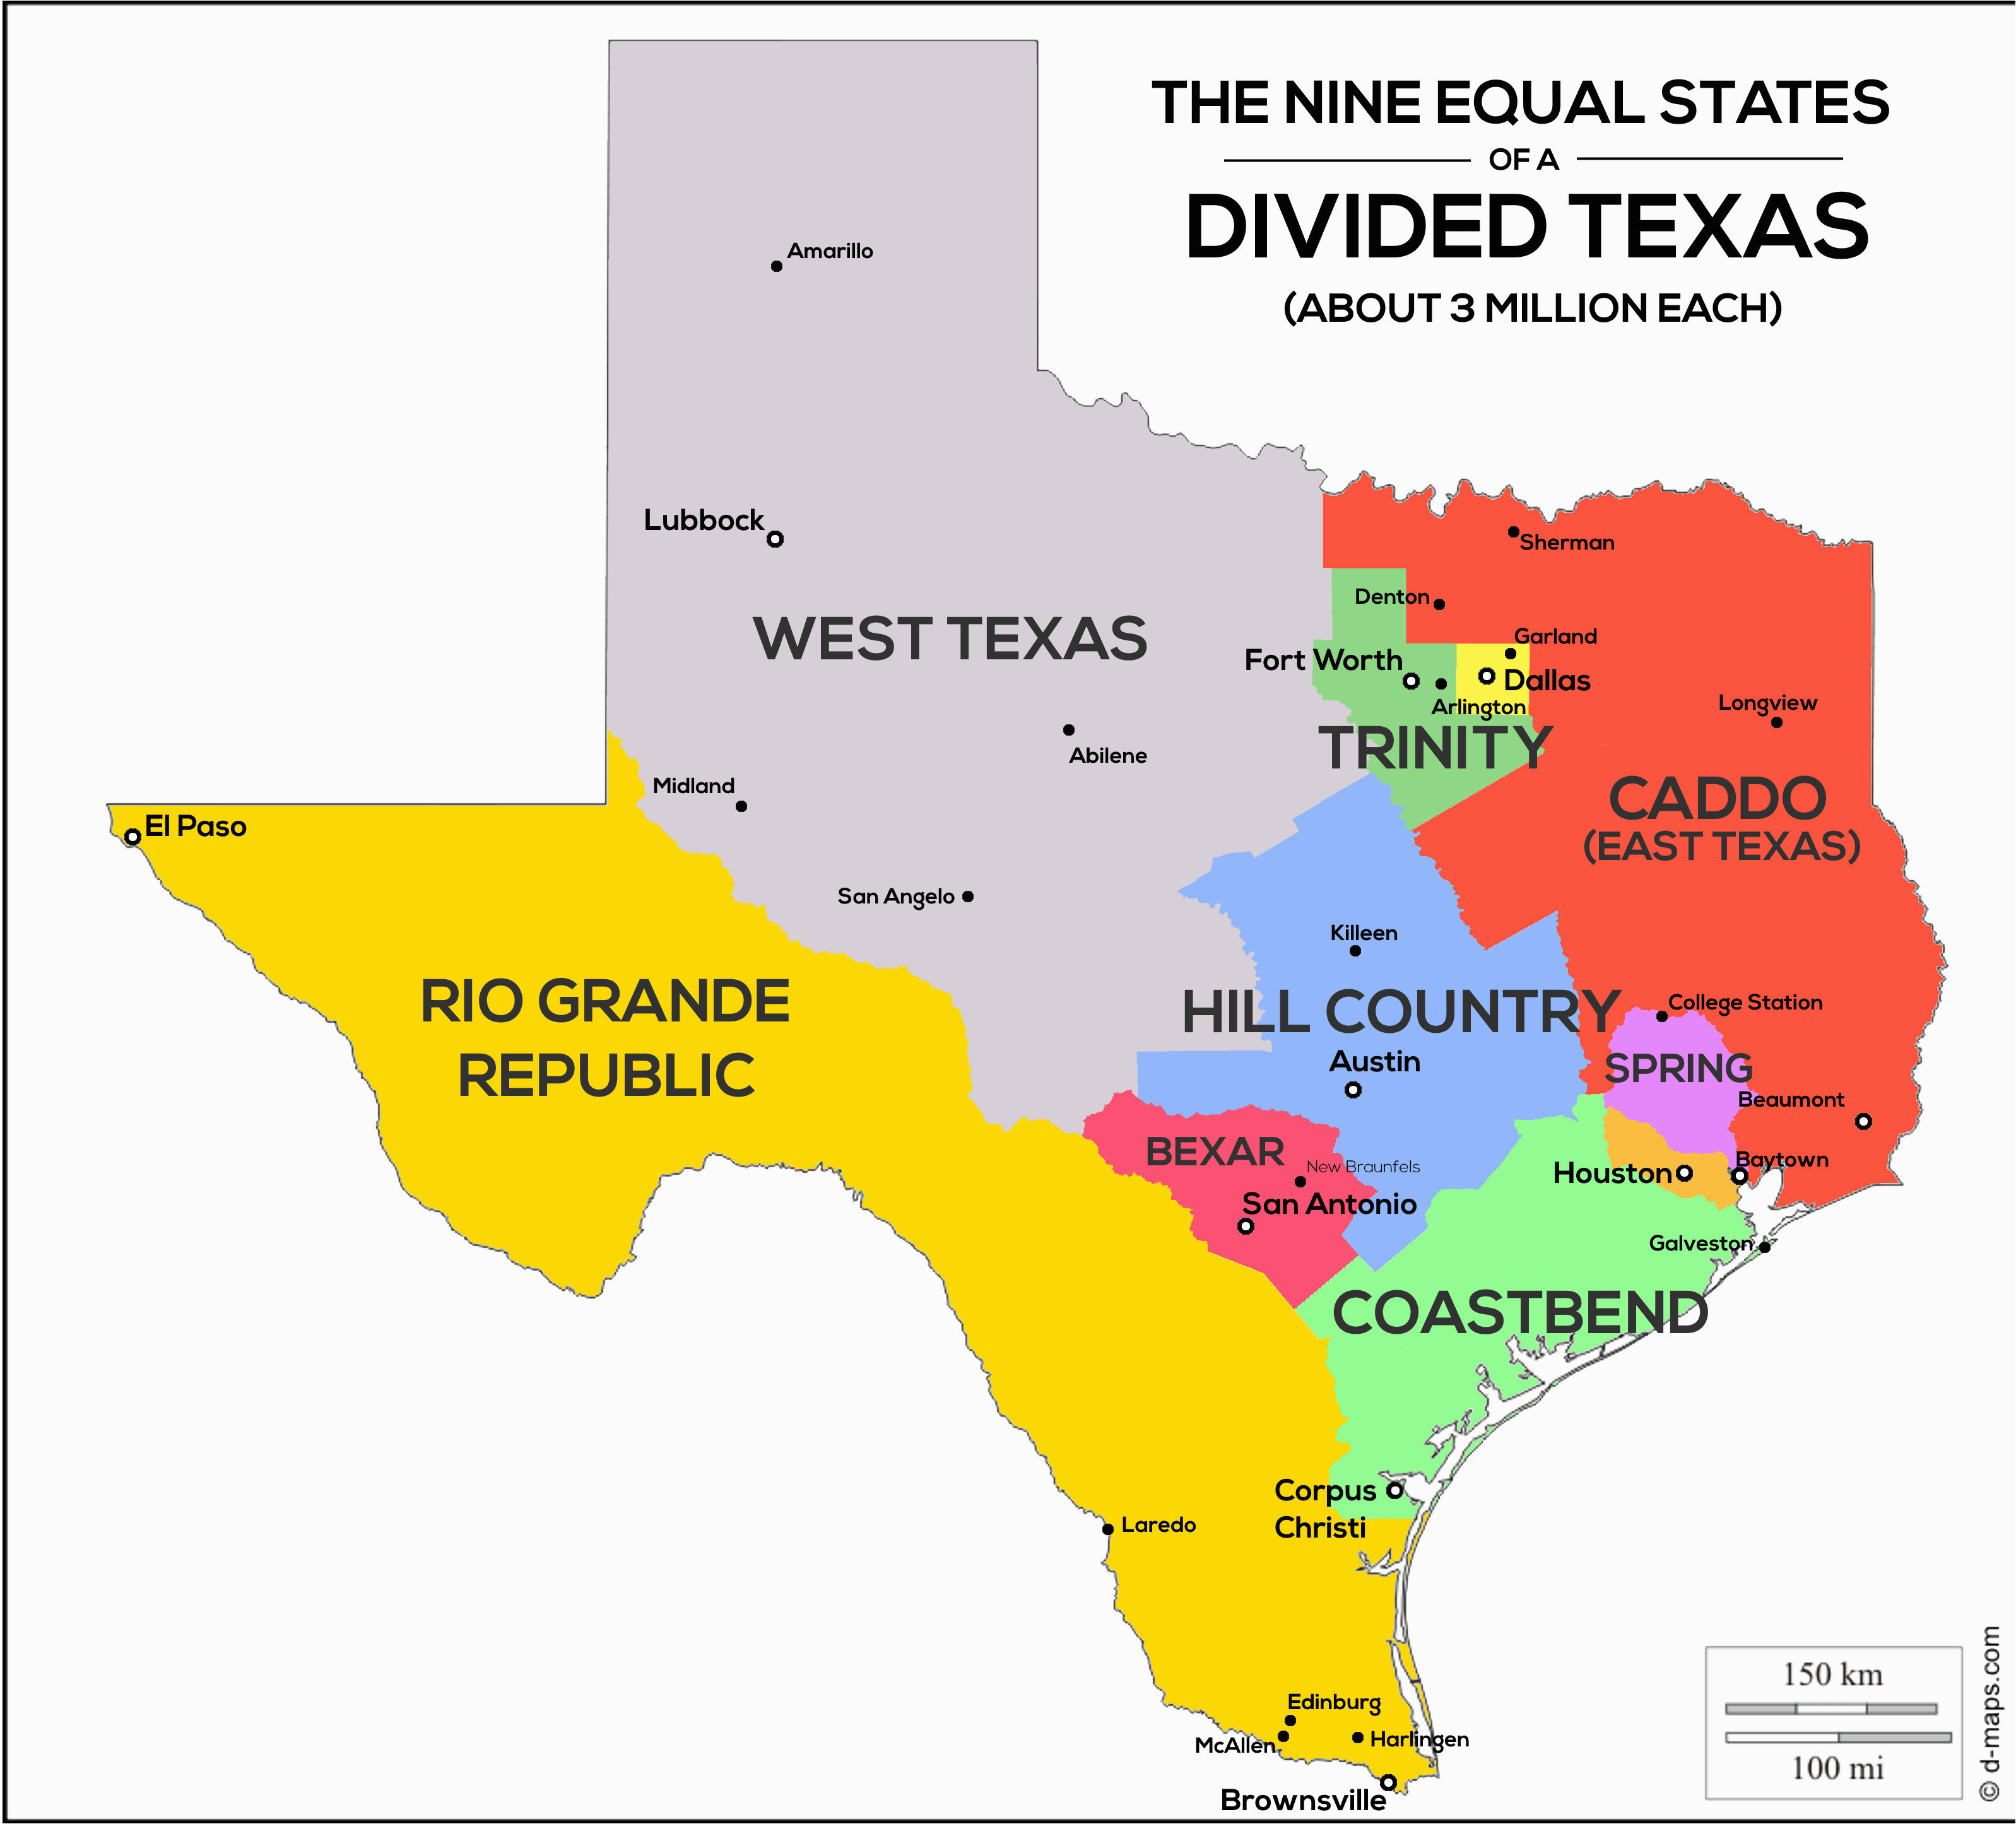 bexar county zip code map beautiful area codes 713 281 346 and 832